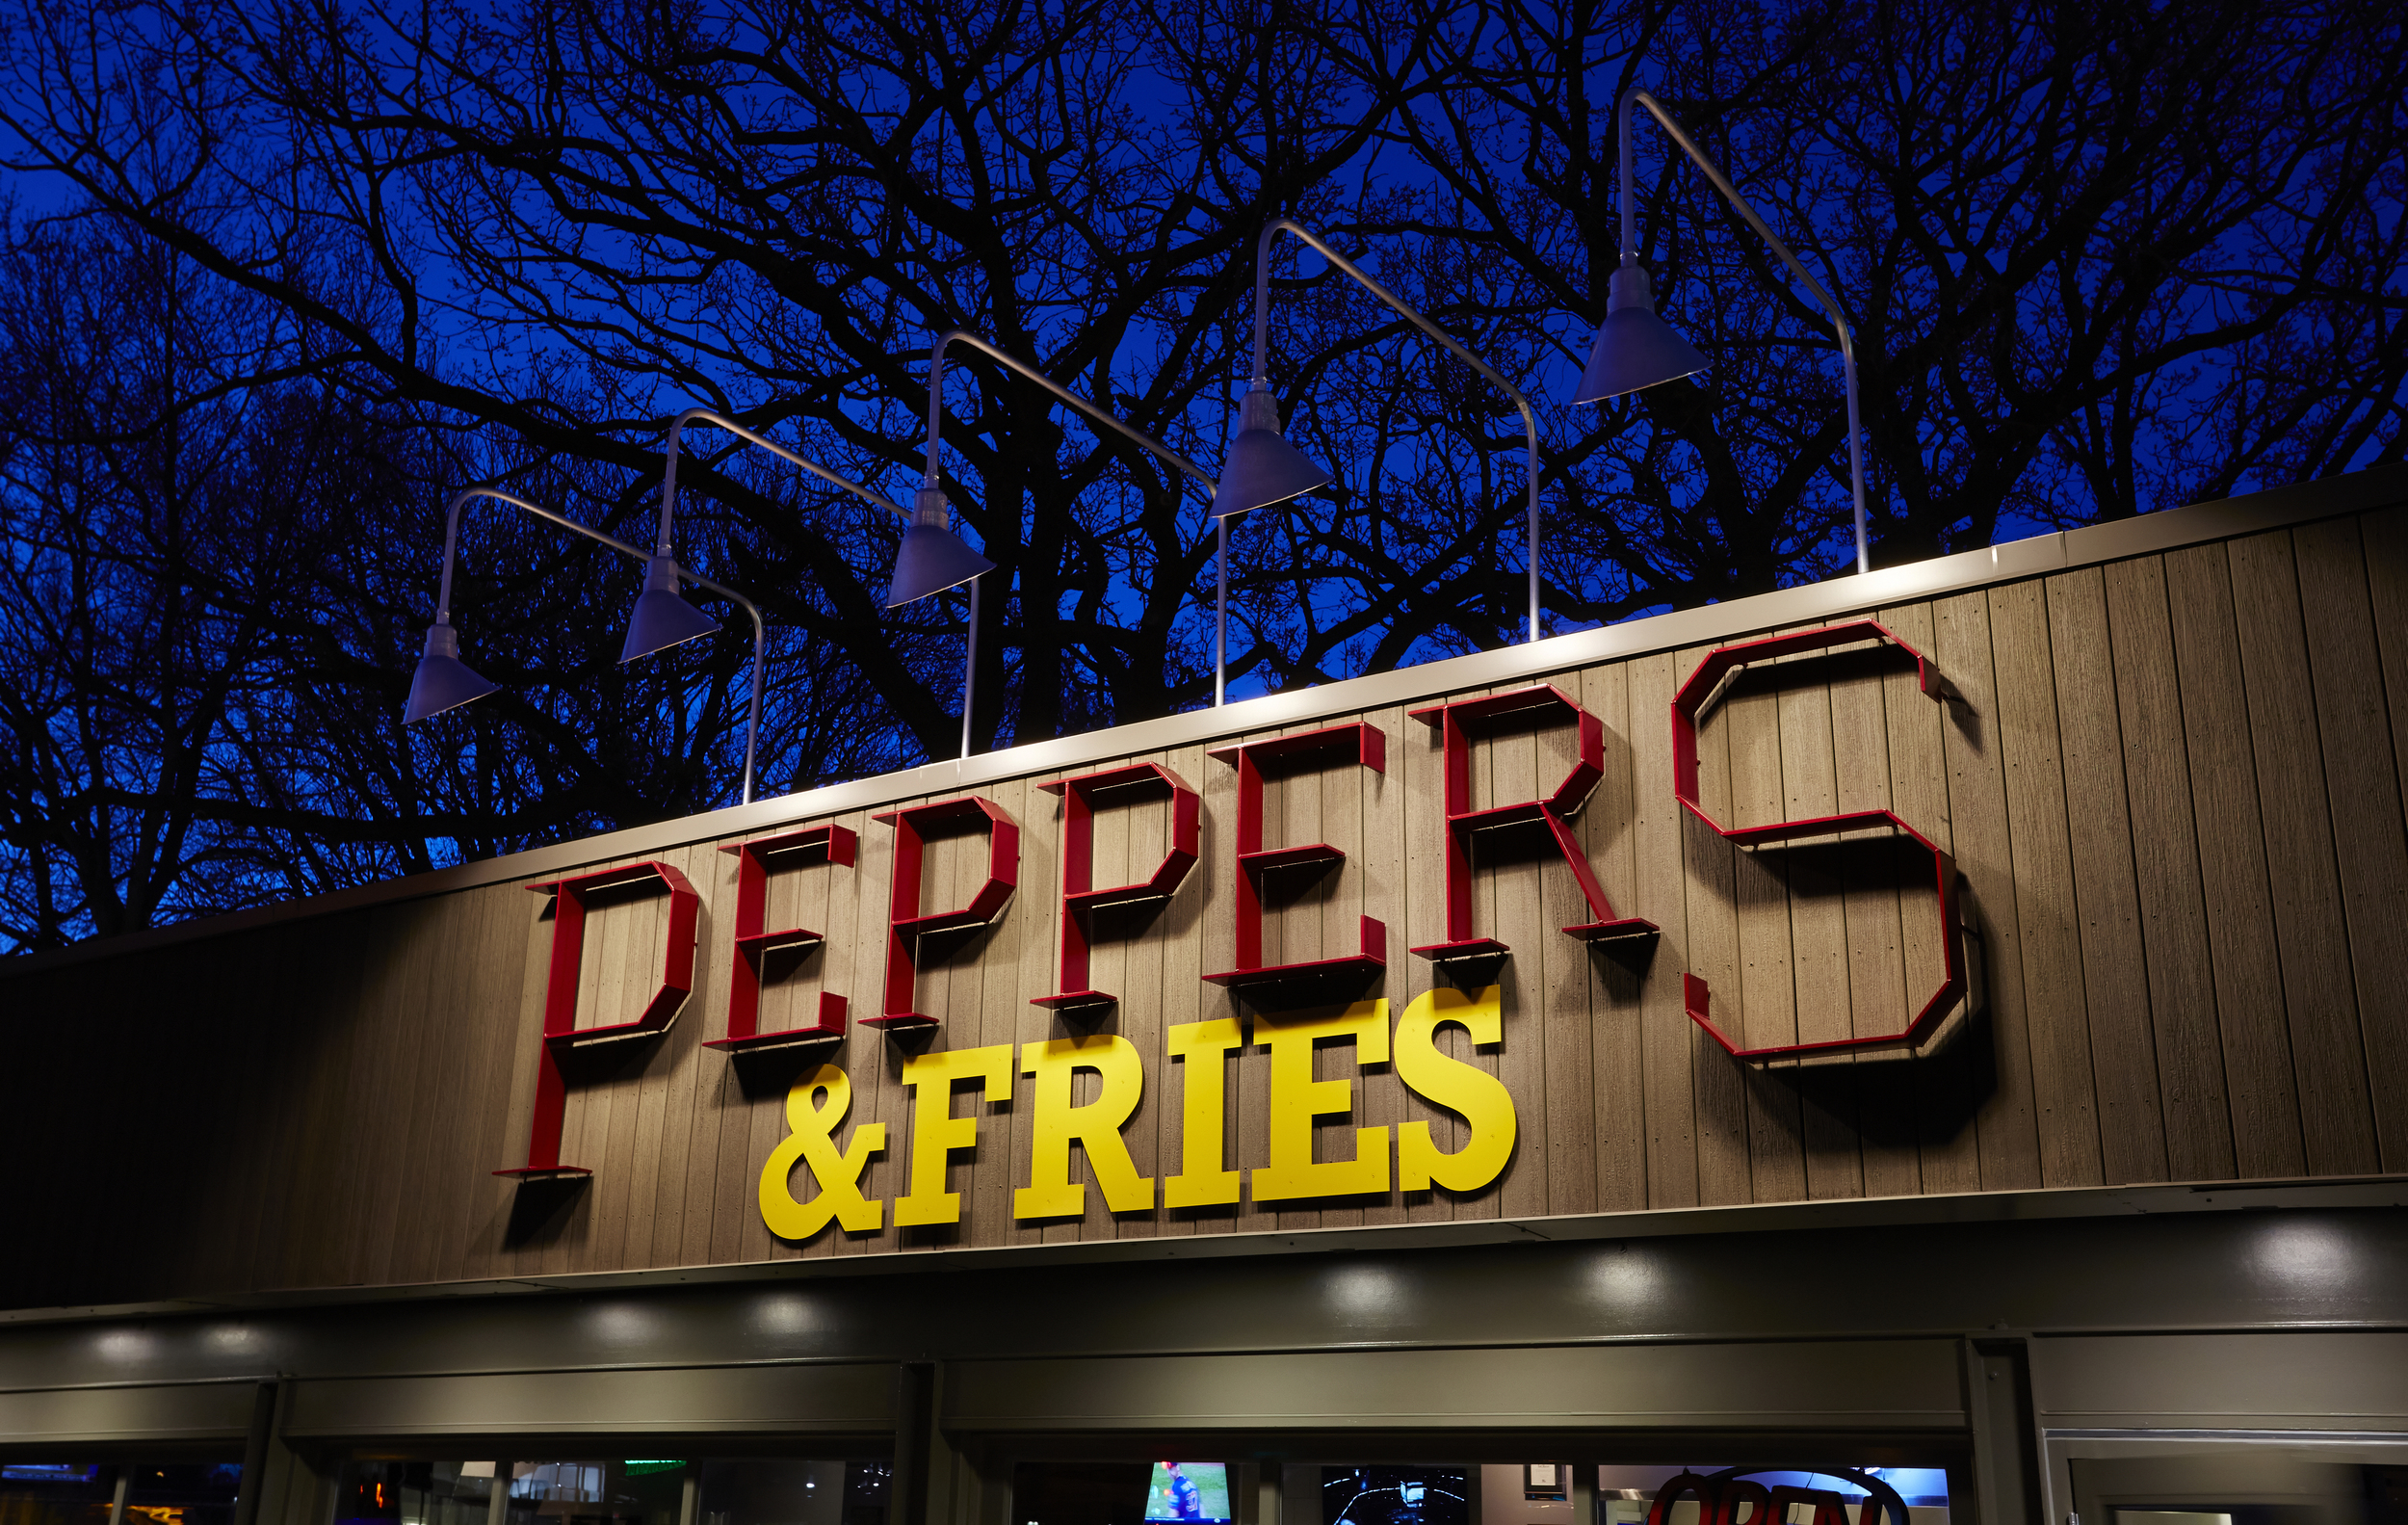 PEPPERS & FRIES RESTAURANT